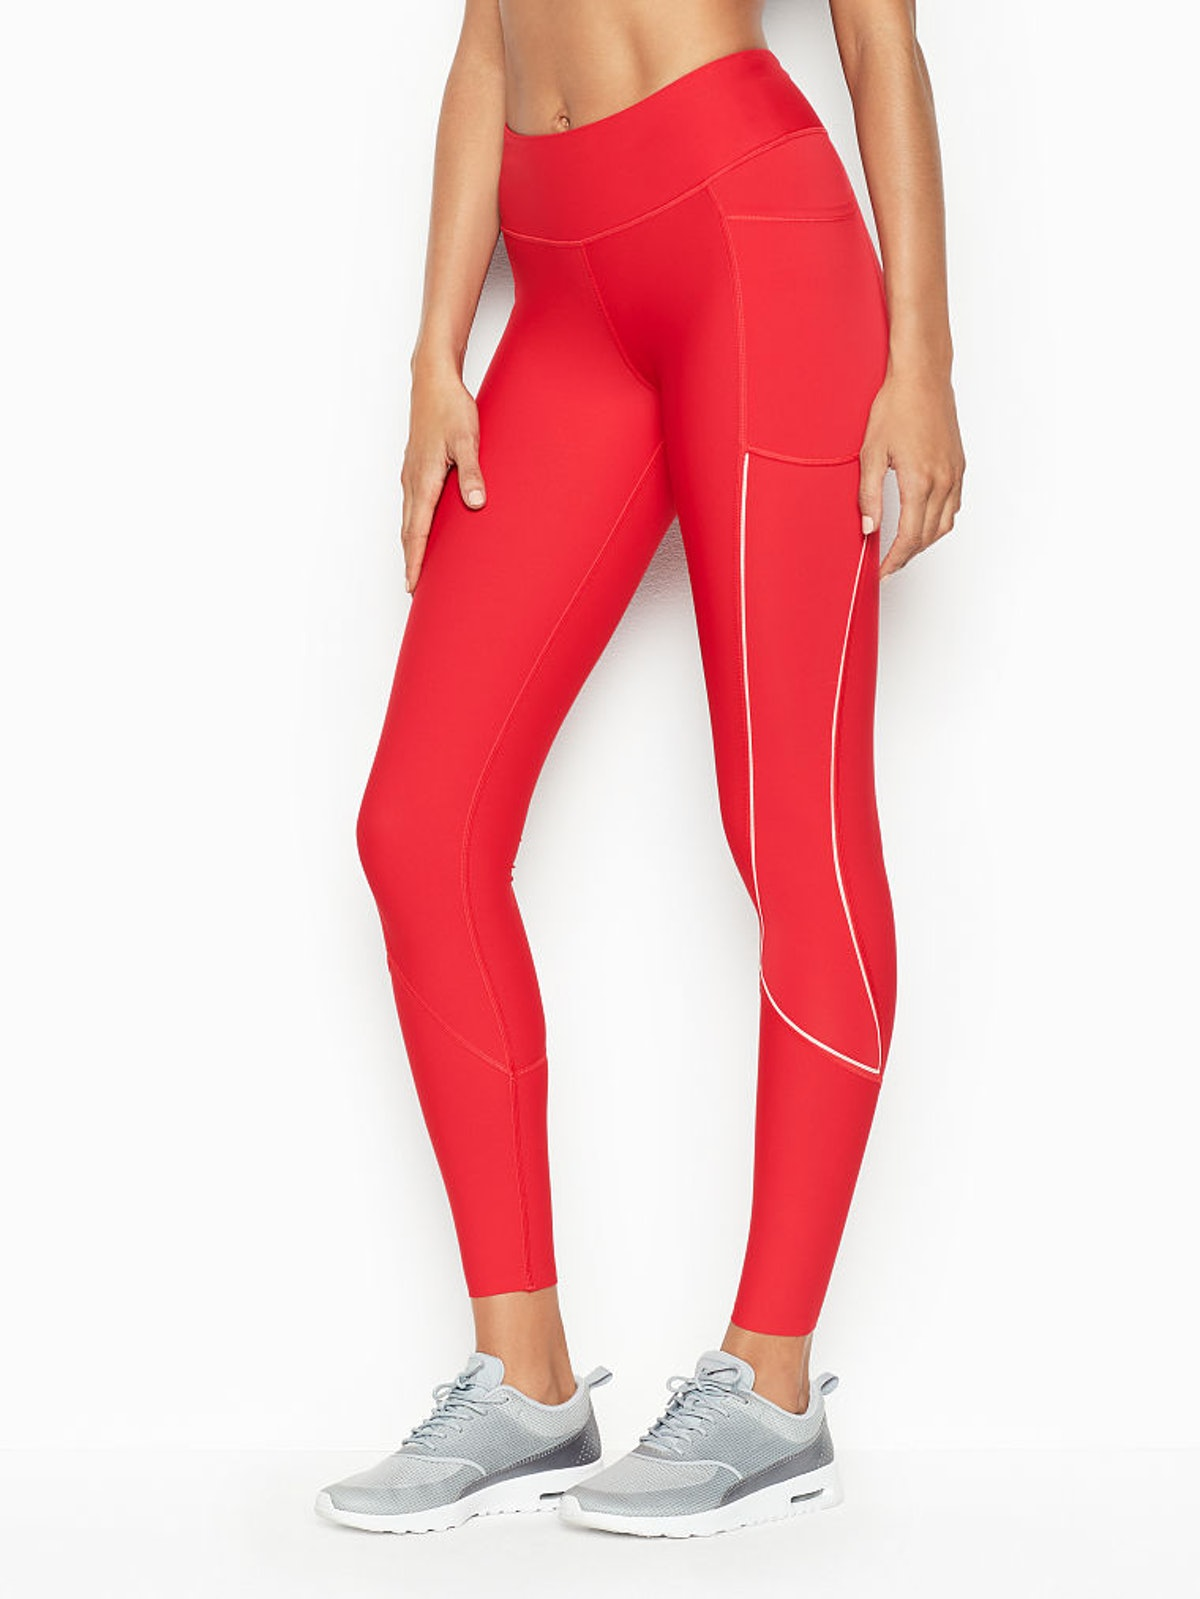 Total Knockout Mid-Rise Sport Tight